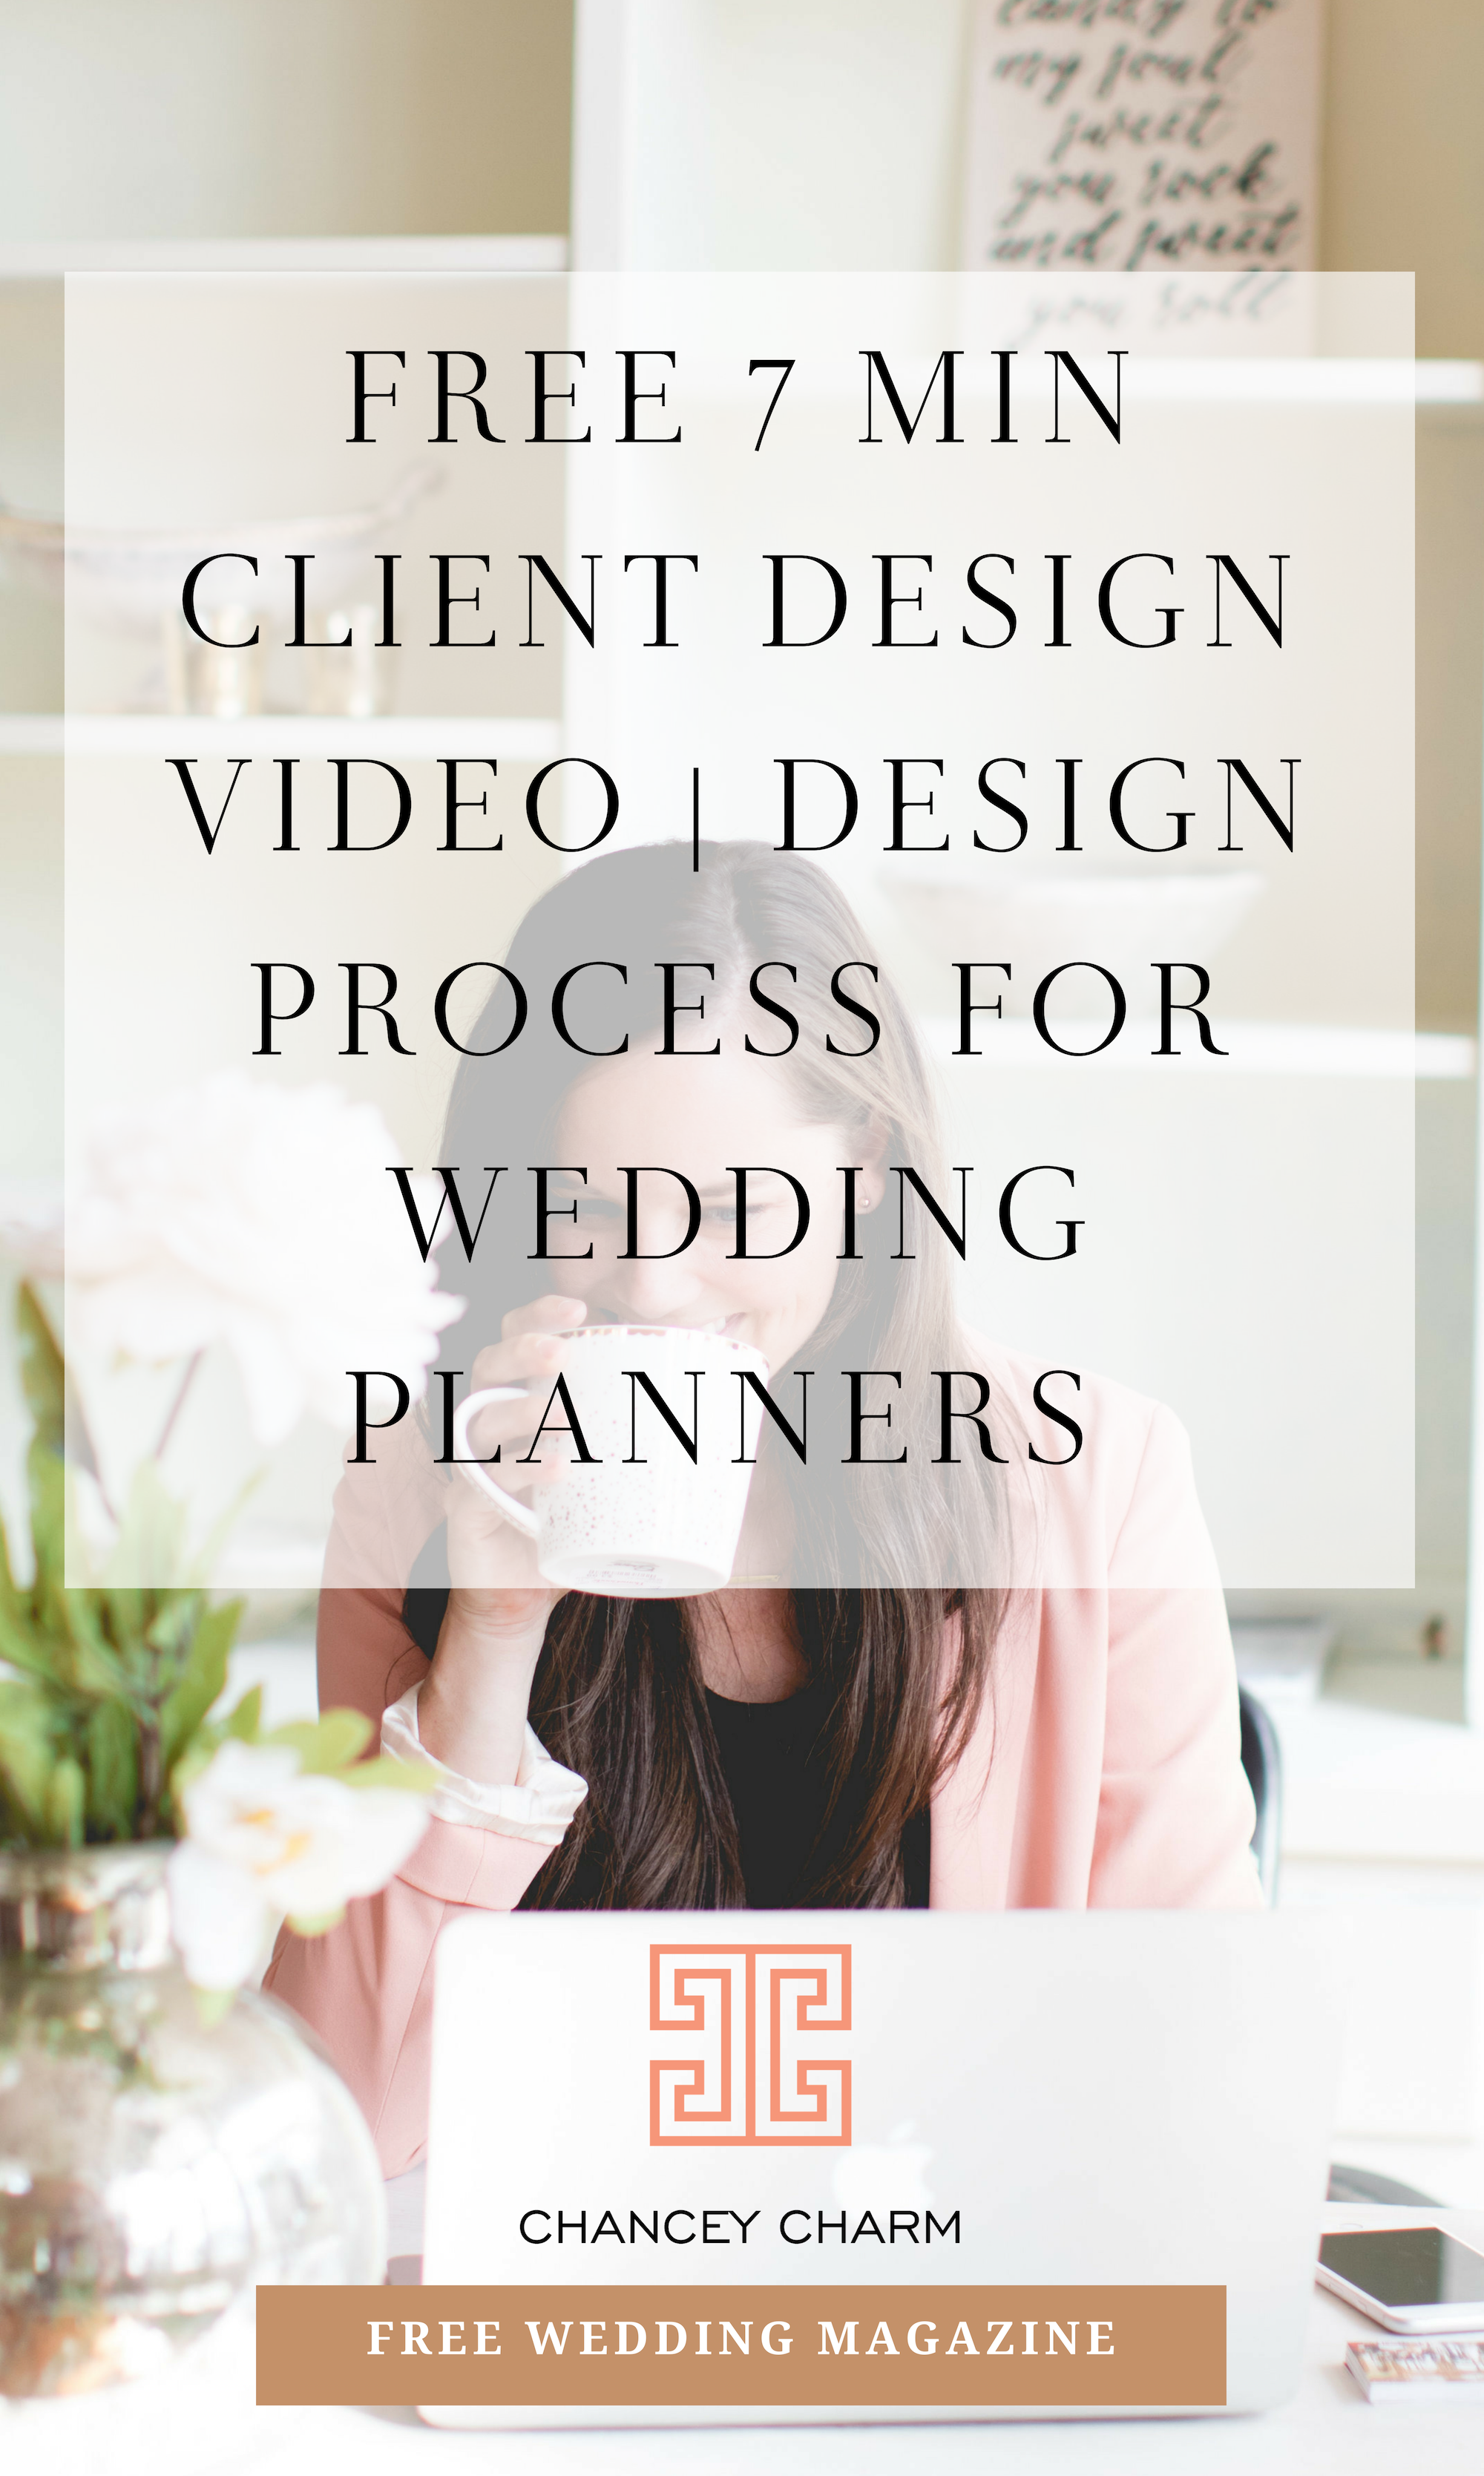 Free 7 Min Client Design Video Design Process For Wedding Planners In My Latest Youtube Vi Wedding Design Board Wedding Planner Resources Wedding Planner